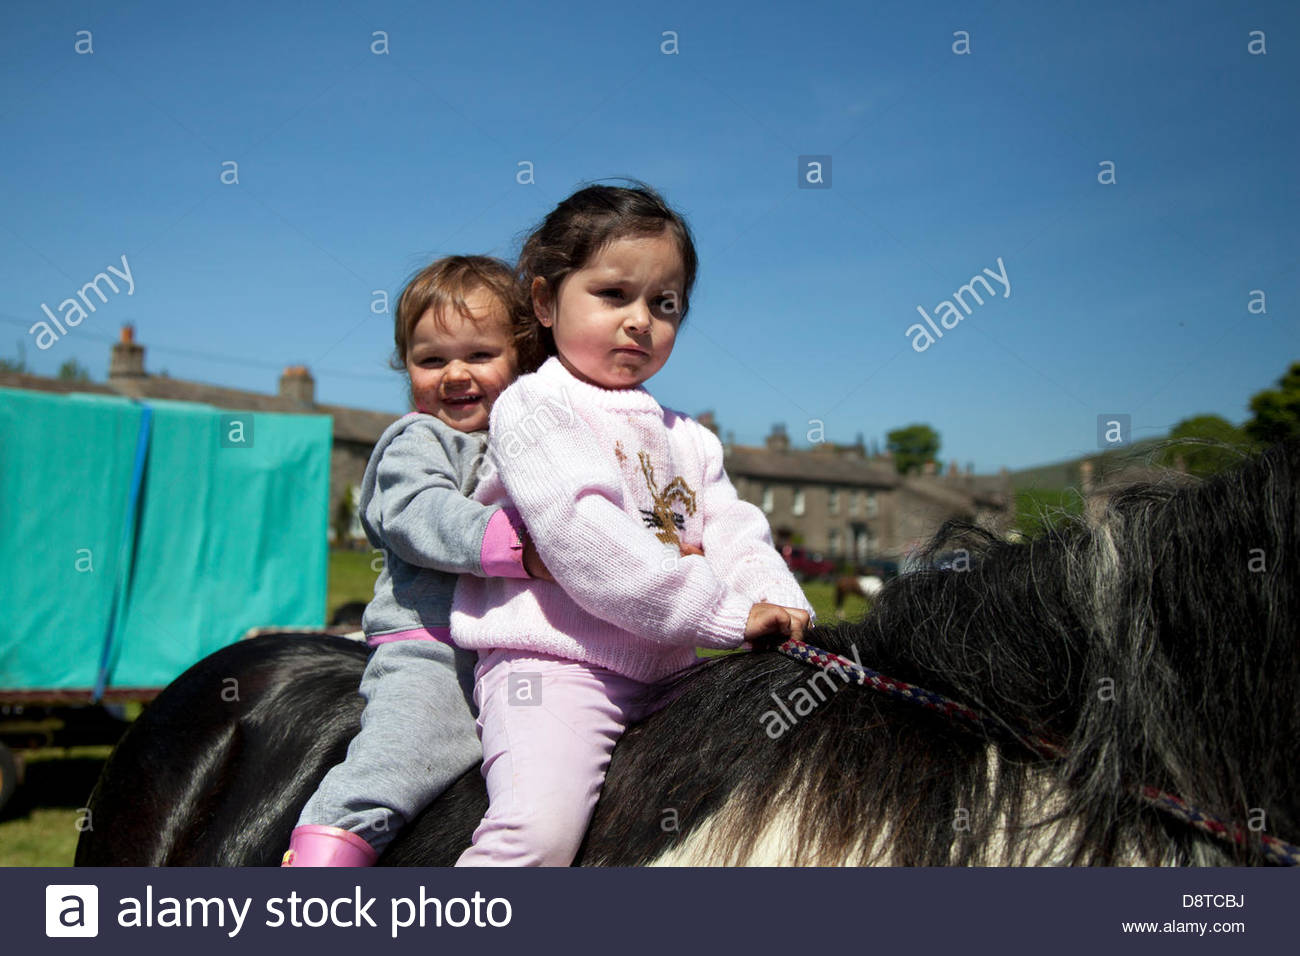 Bainbridge, Richmondshire, North Yorkshire, UK. 4th June, 2013. Imogen & Lily Corrie riding a Cob Horse with Members Stock Foto